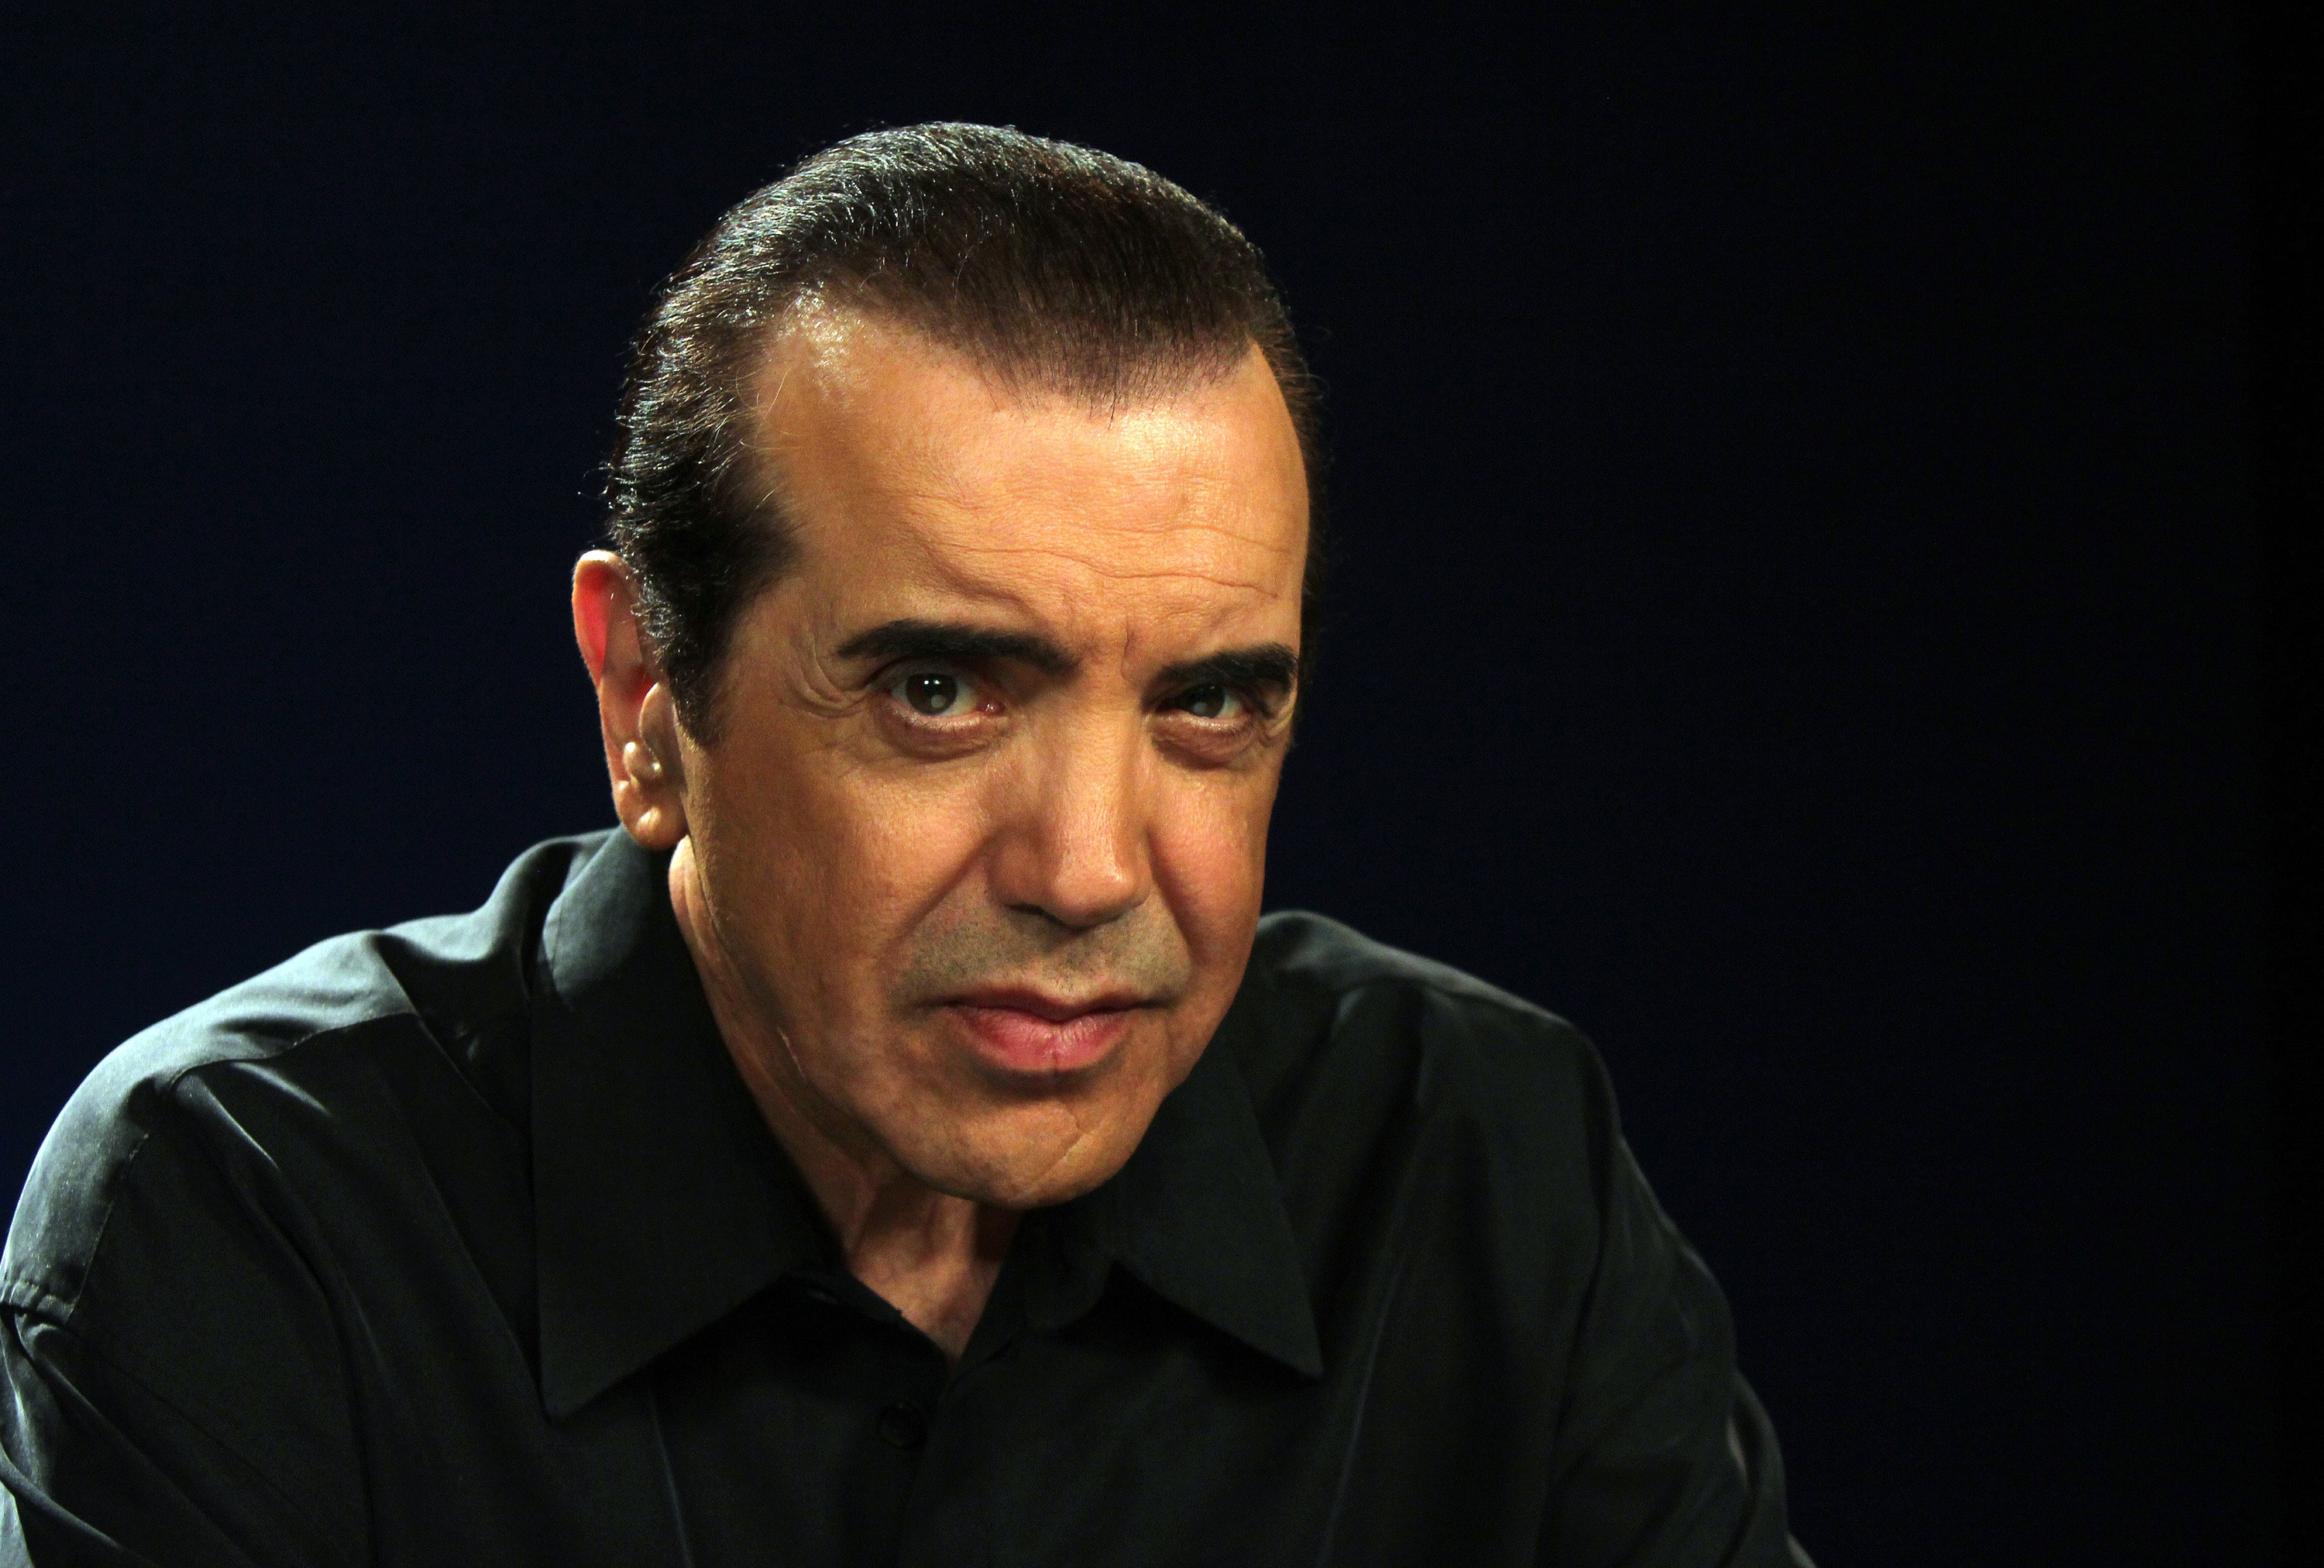 Chazz Palminteri Desktop wallpaper